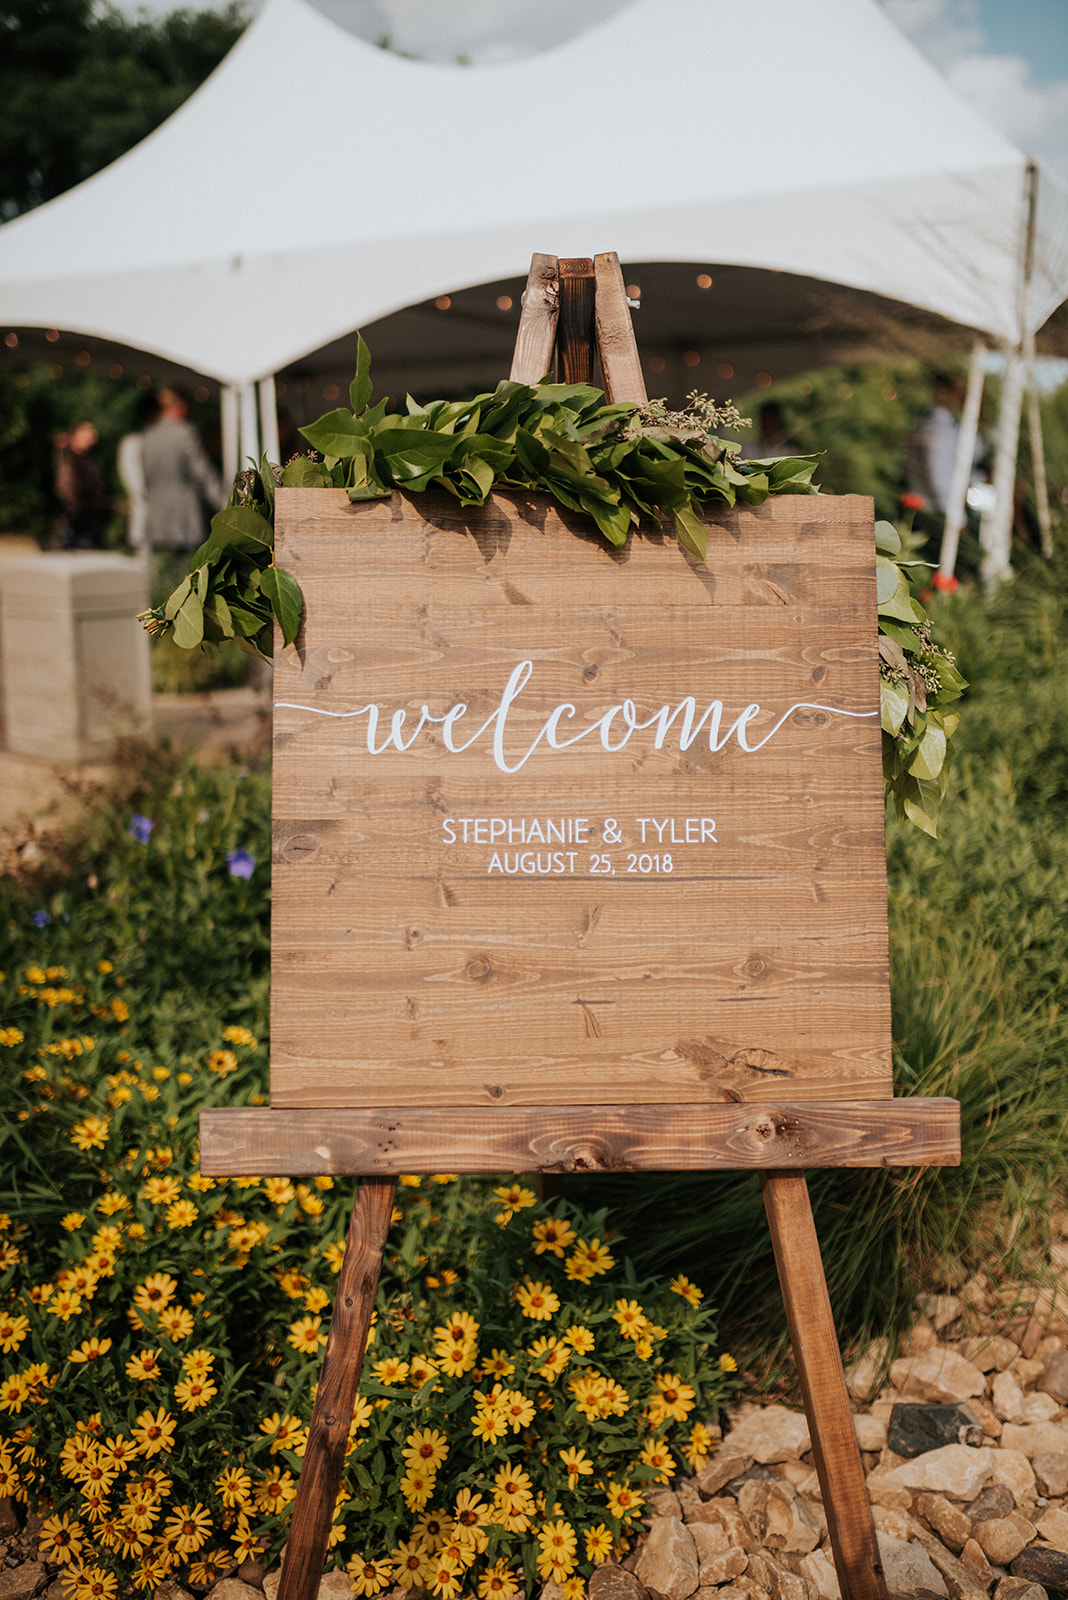 overthevineswisconsinwedding_0459.jpg